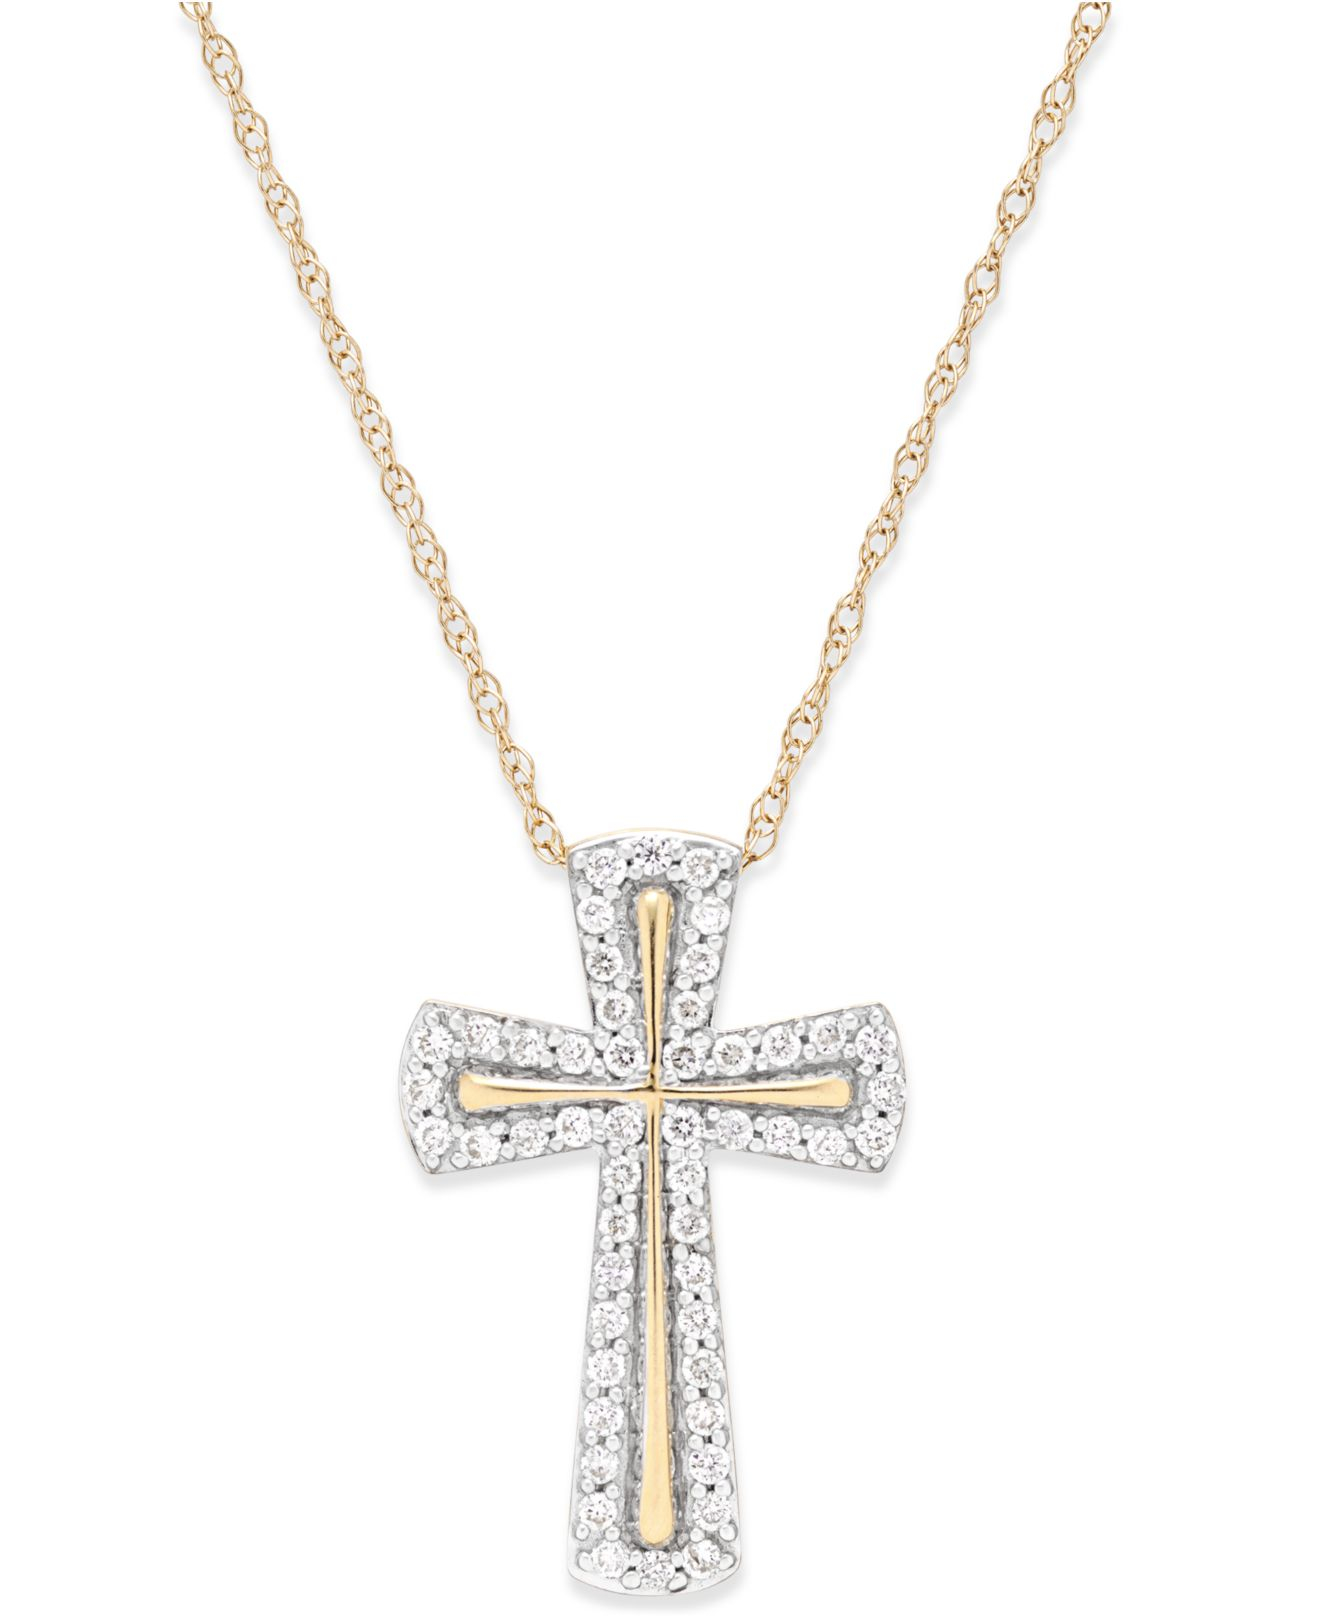 Gold Cross Necklace At Macys